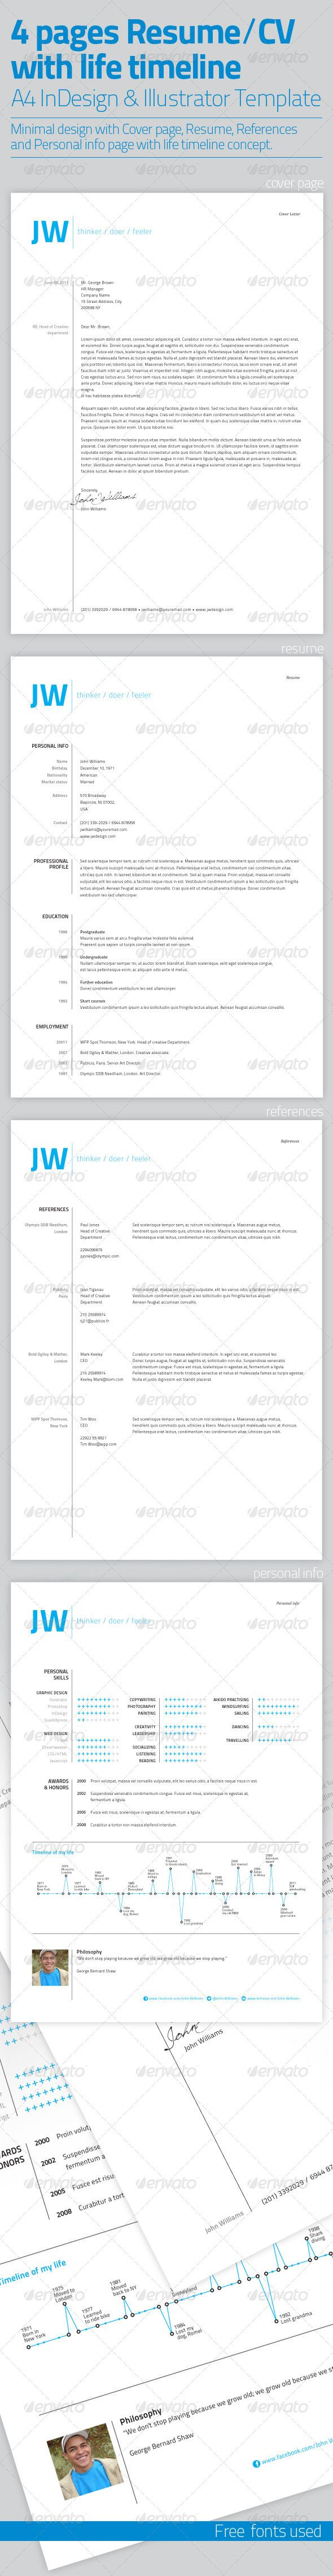 Snowball Resume Template  Adobe Indesign Cs Adobe Indesign And